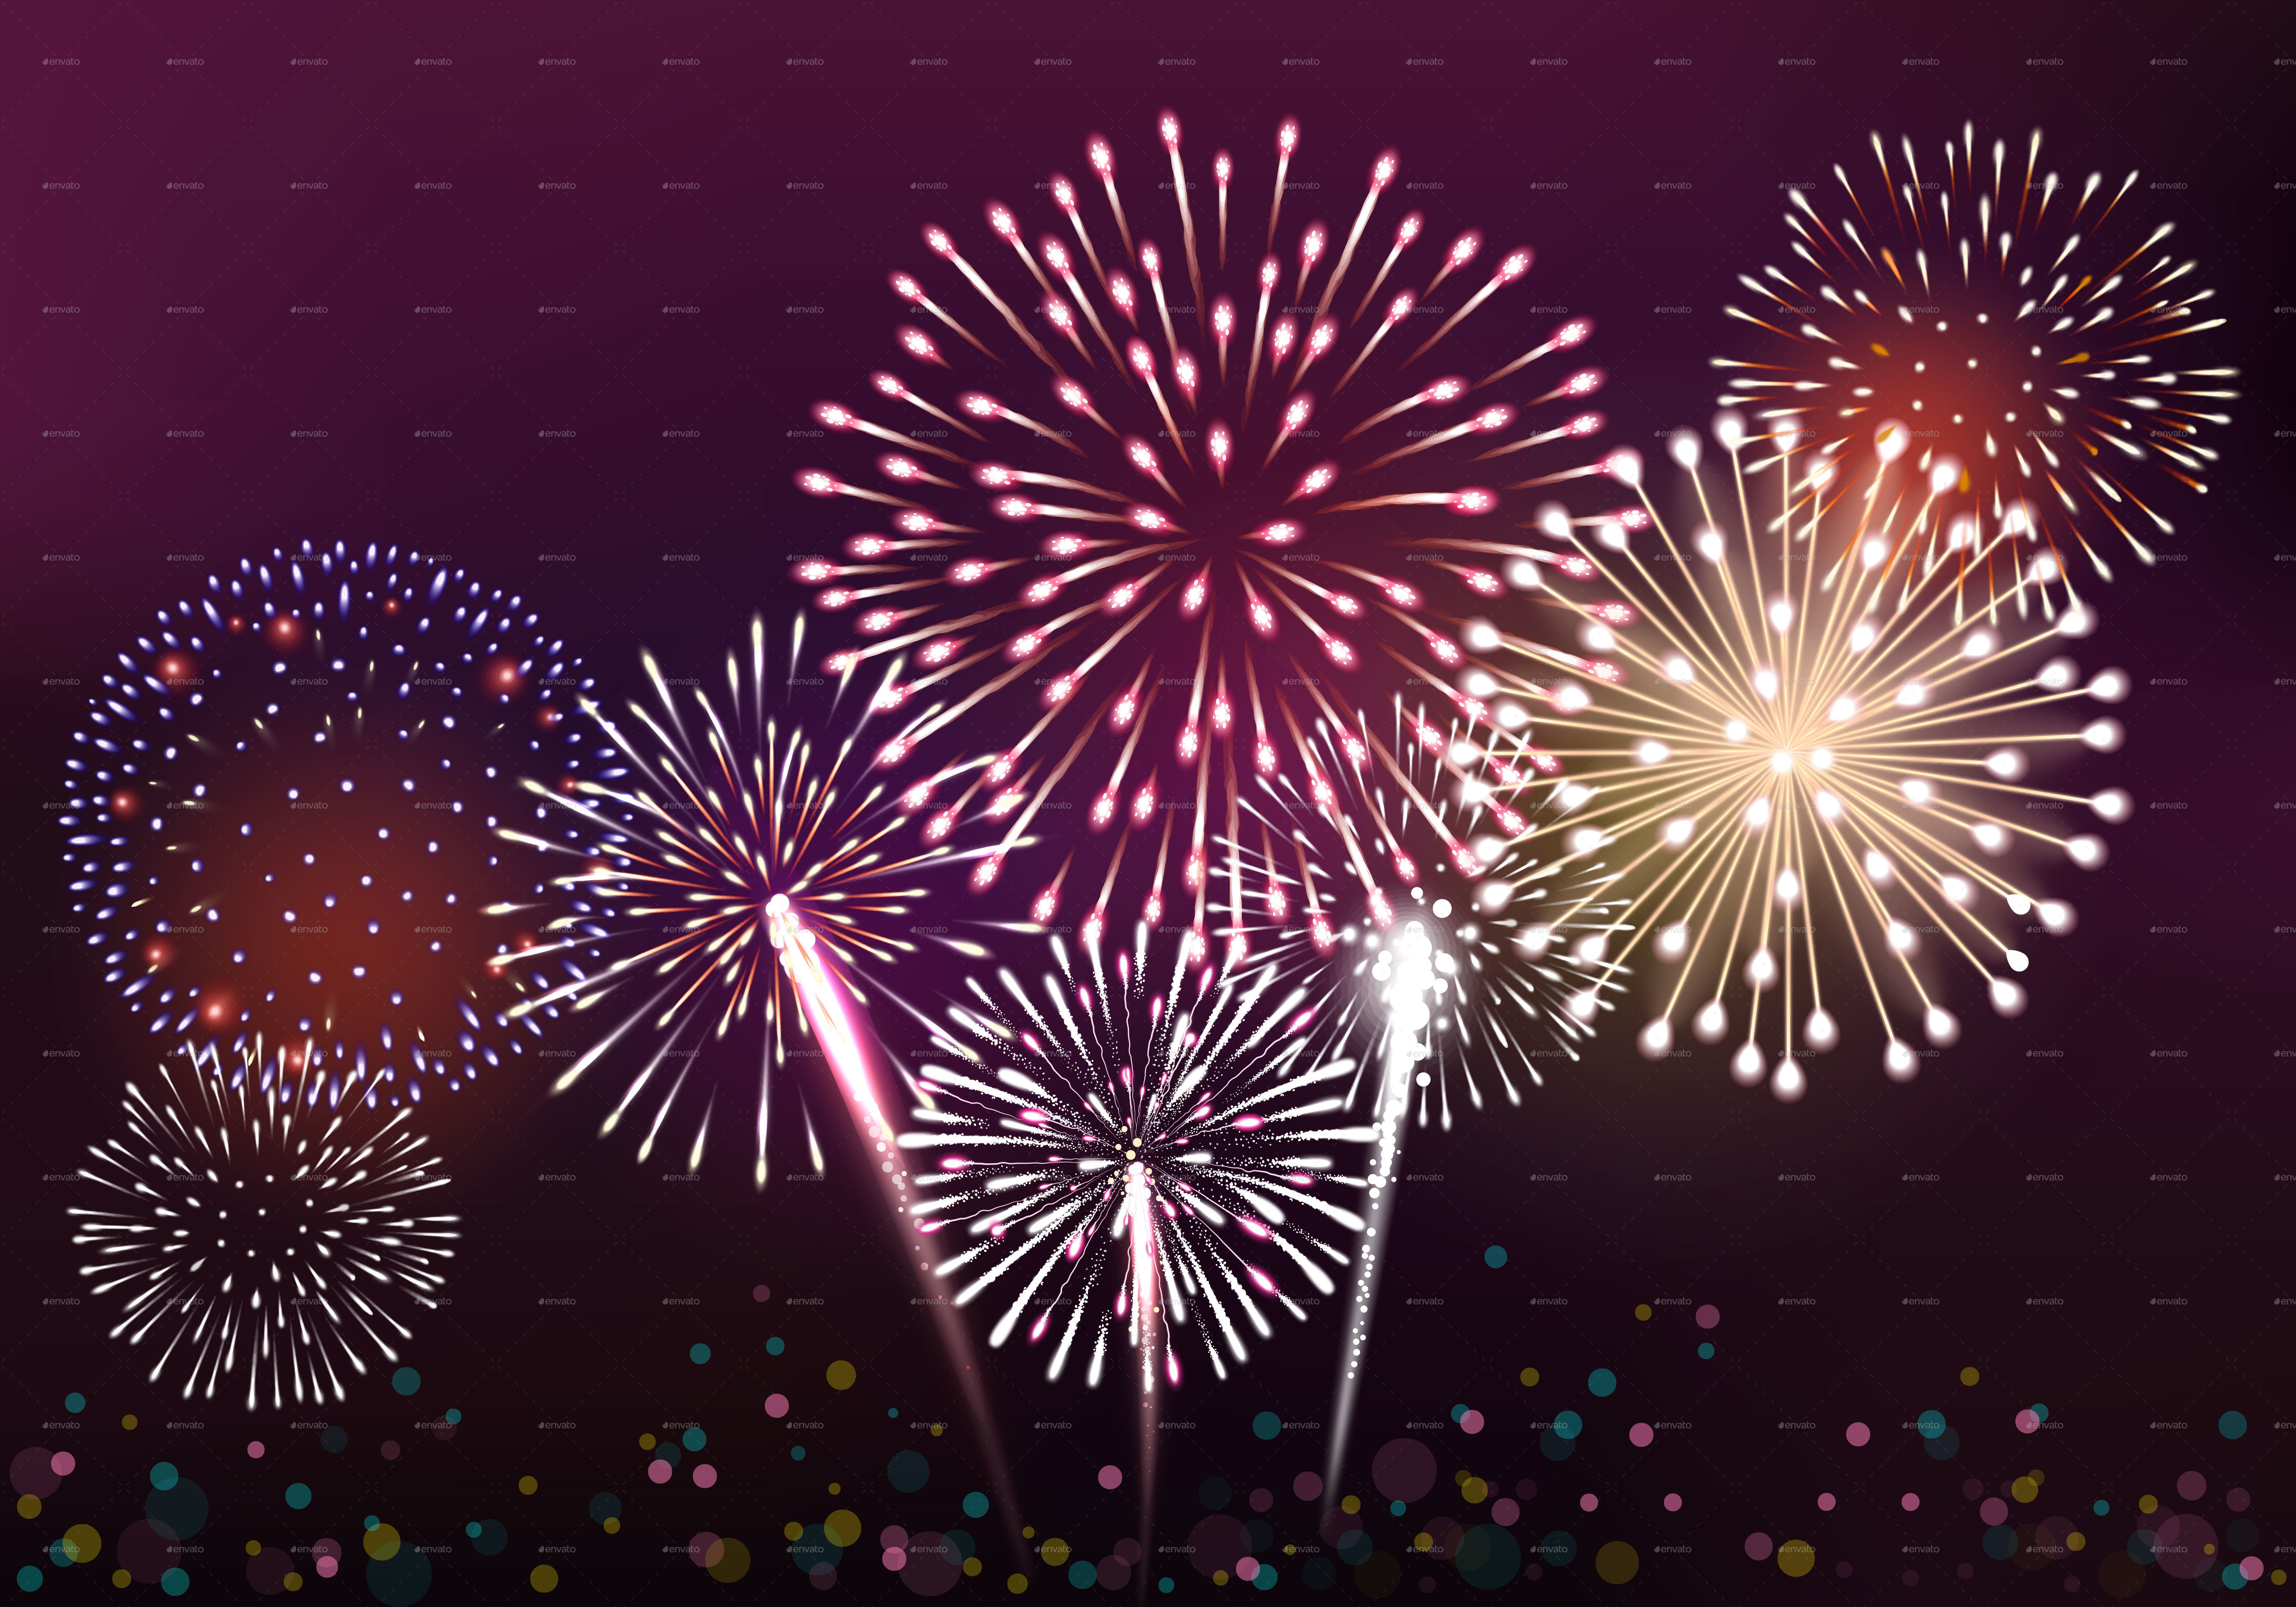 how to add fireworks to powerpoint 2010